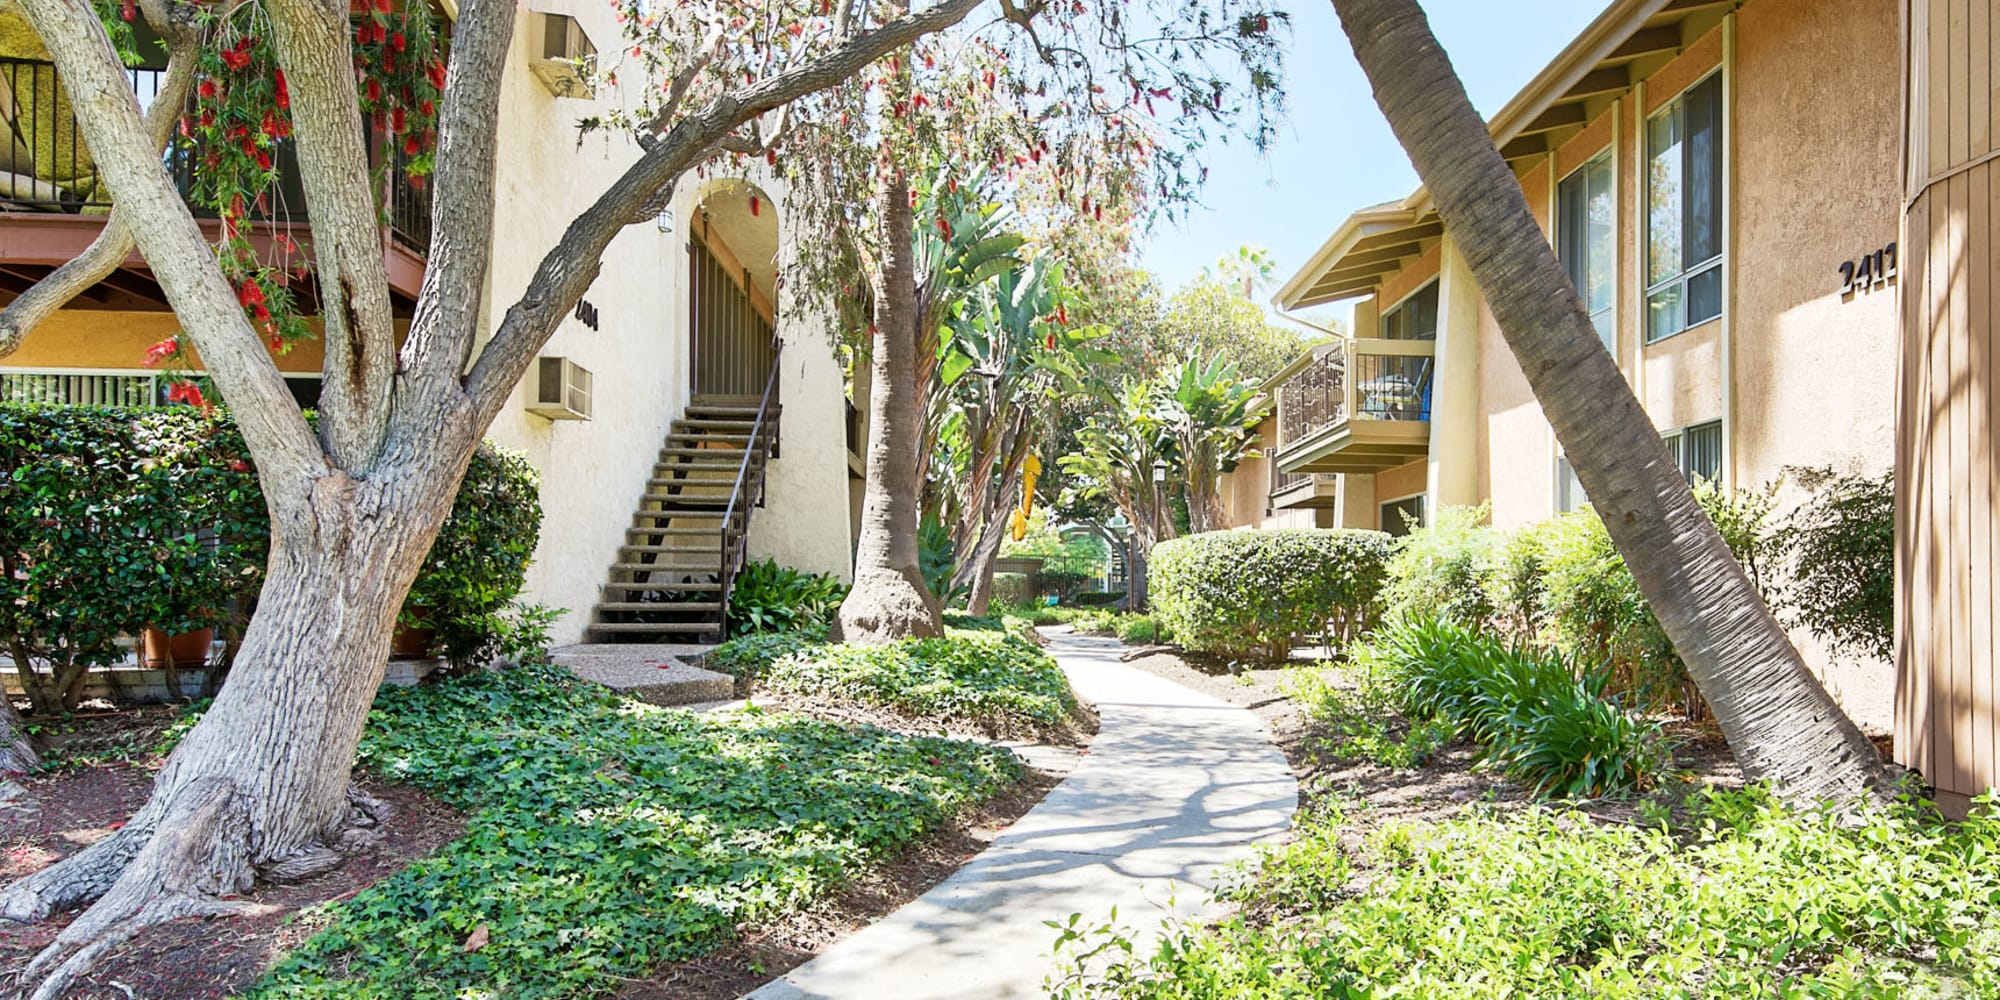 Lush flora and palm trees between resident buildings at Mediterranean Village Apartments in Costa Mesa, California